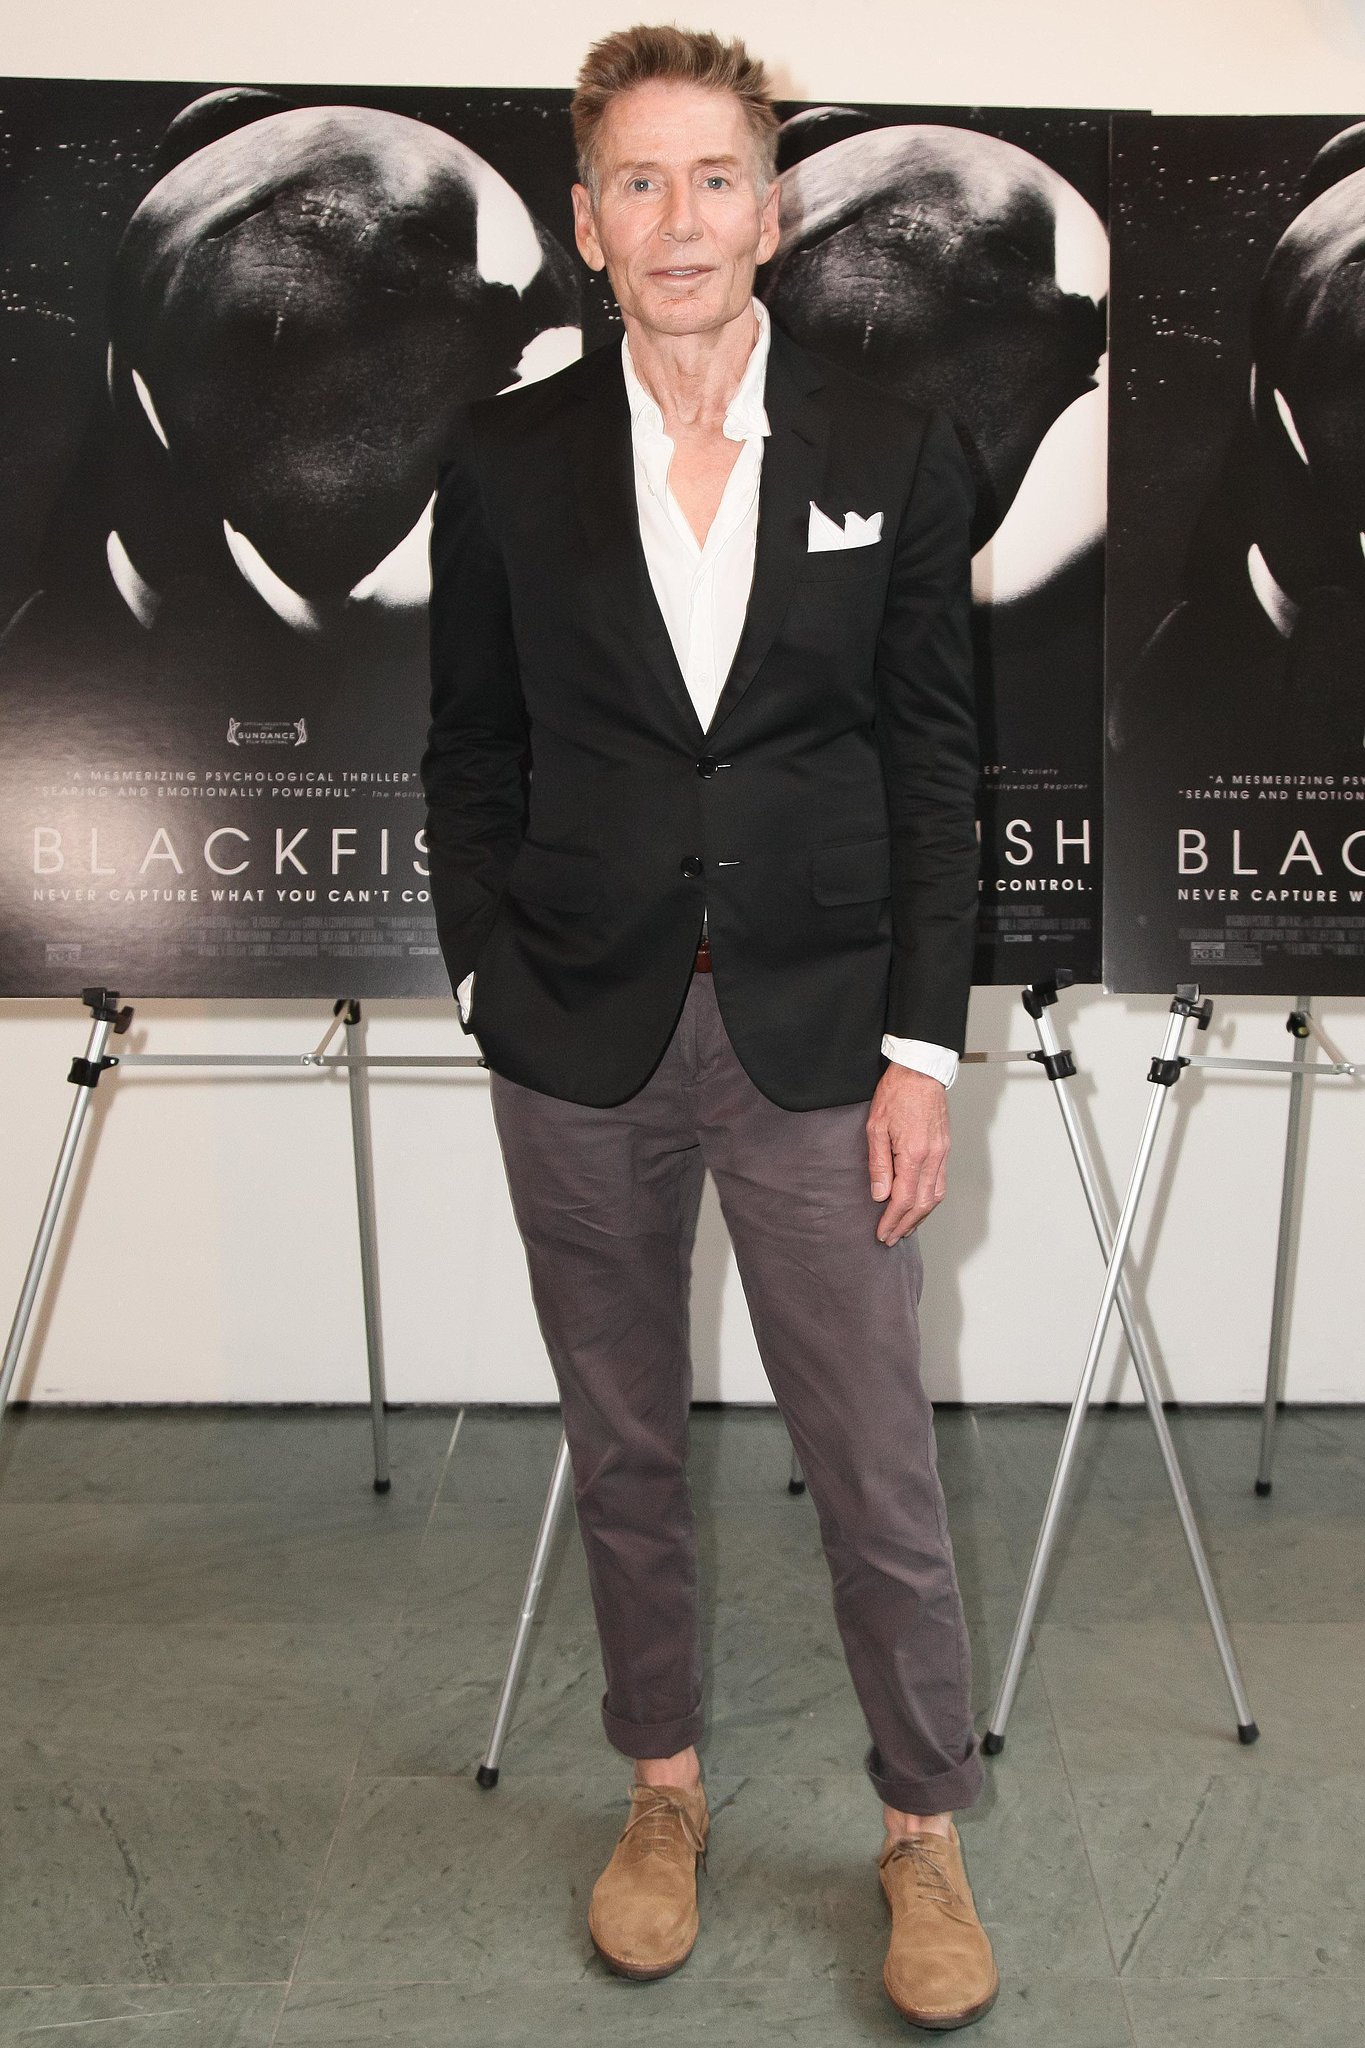 Calvin Klein looked dapper as ever at a New York screening of Blackfish with CNN.